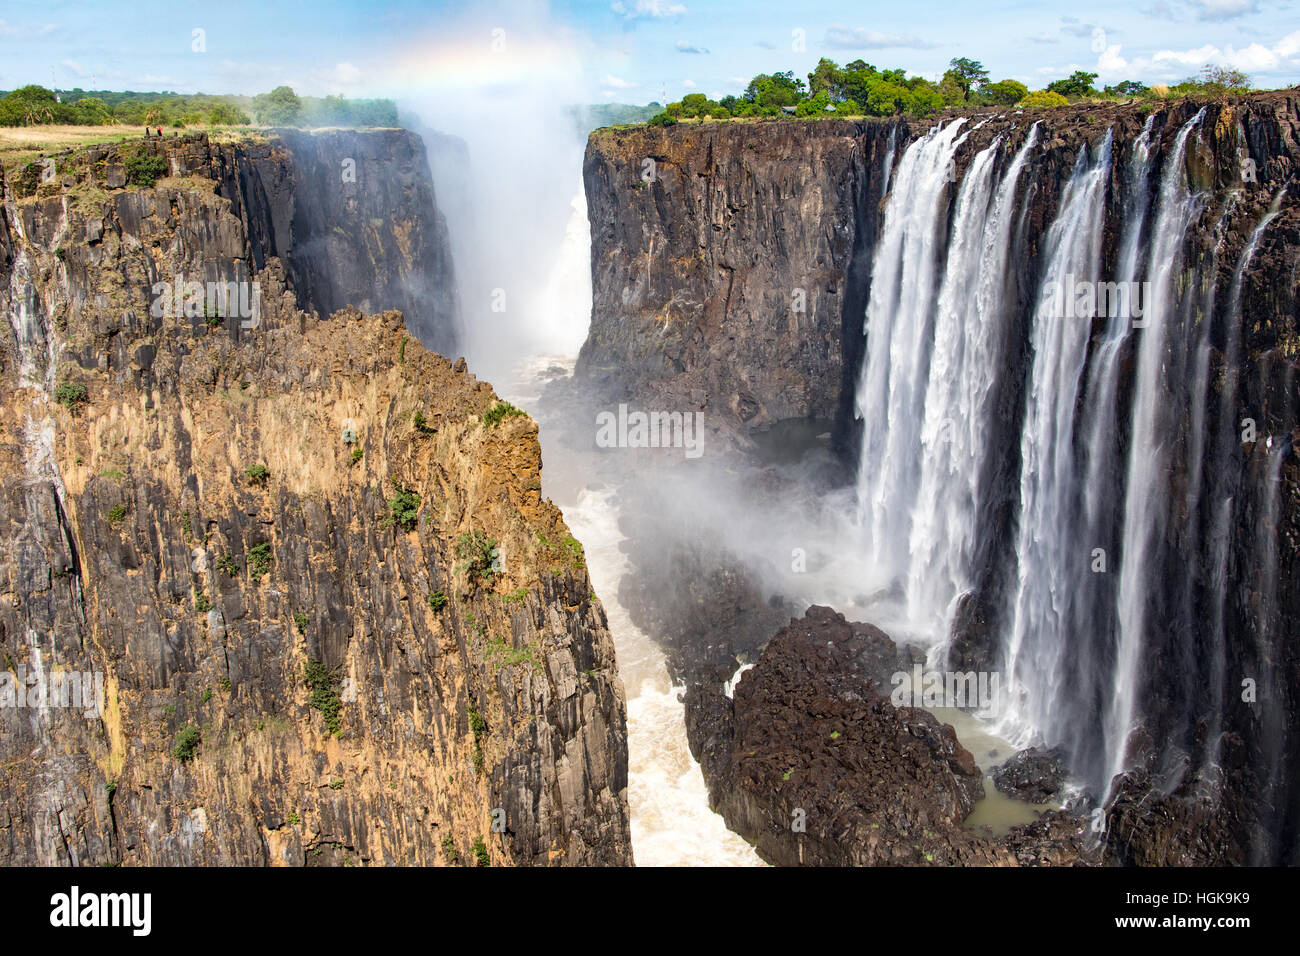 Victoria Falls, Zambia and Zimbabwe border - Stock Image